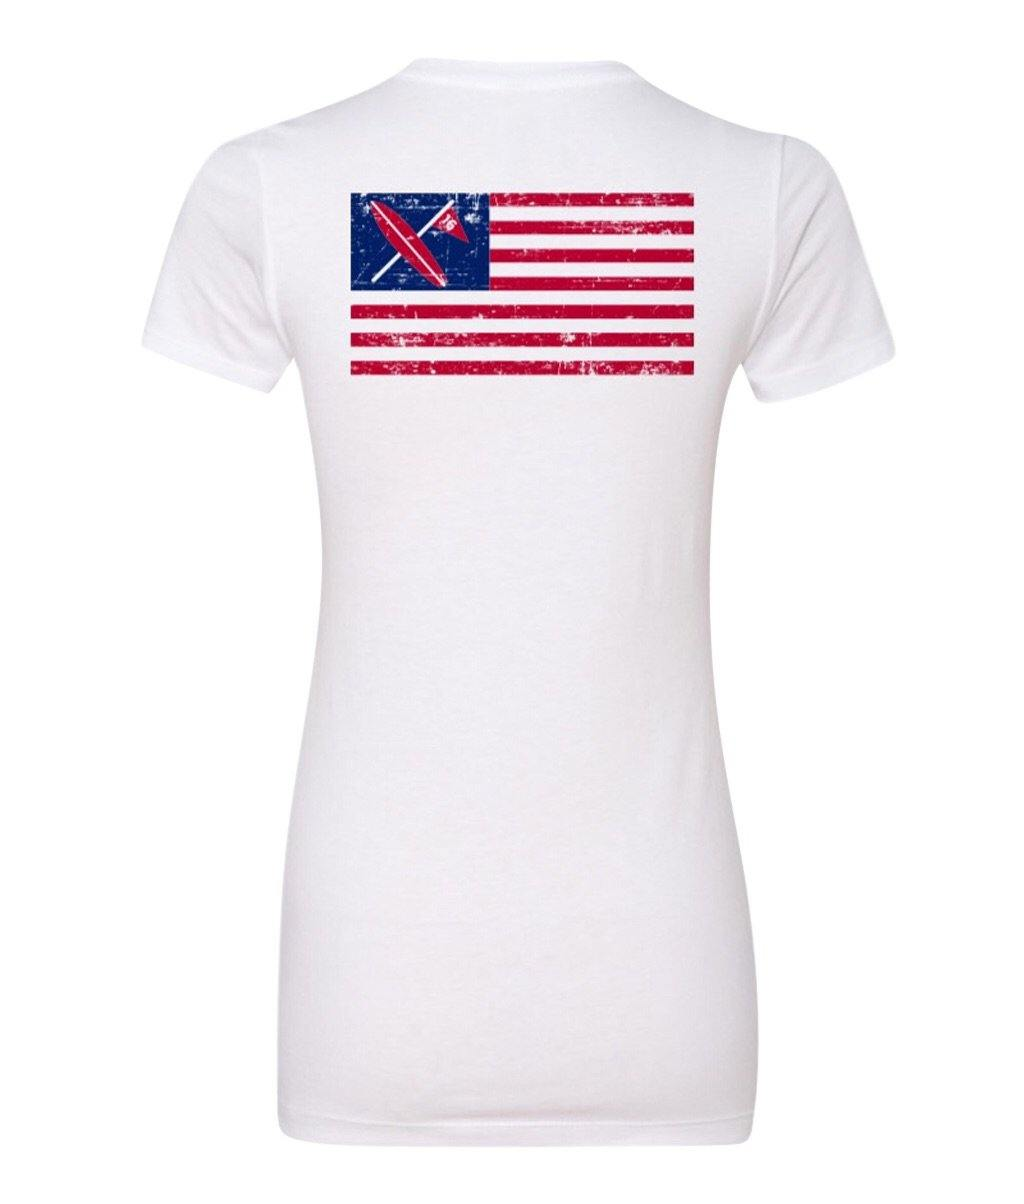 Ladies Freedom Tee White - Surf & Turf Golf